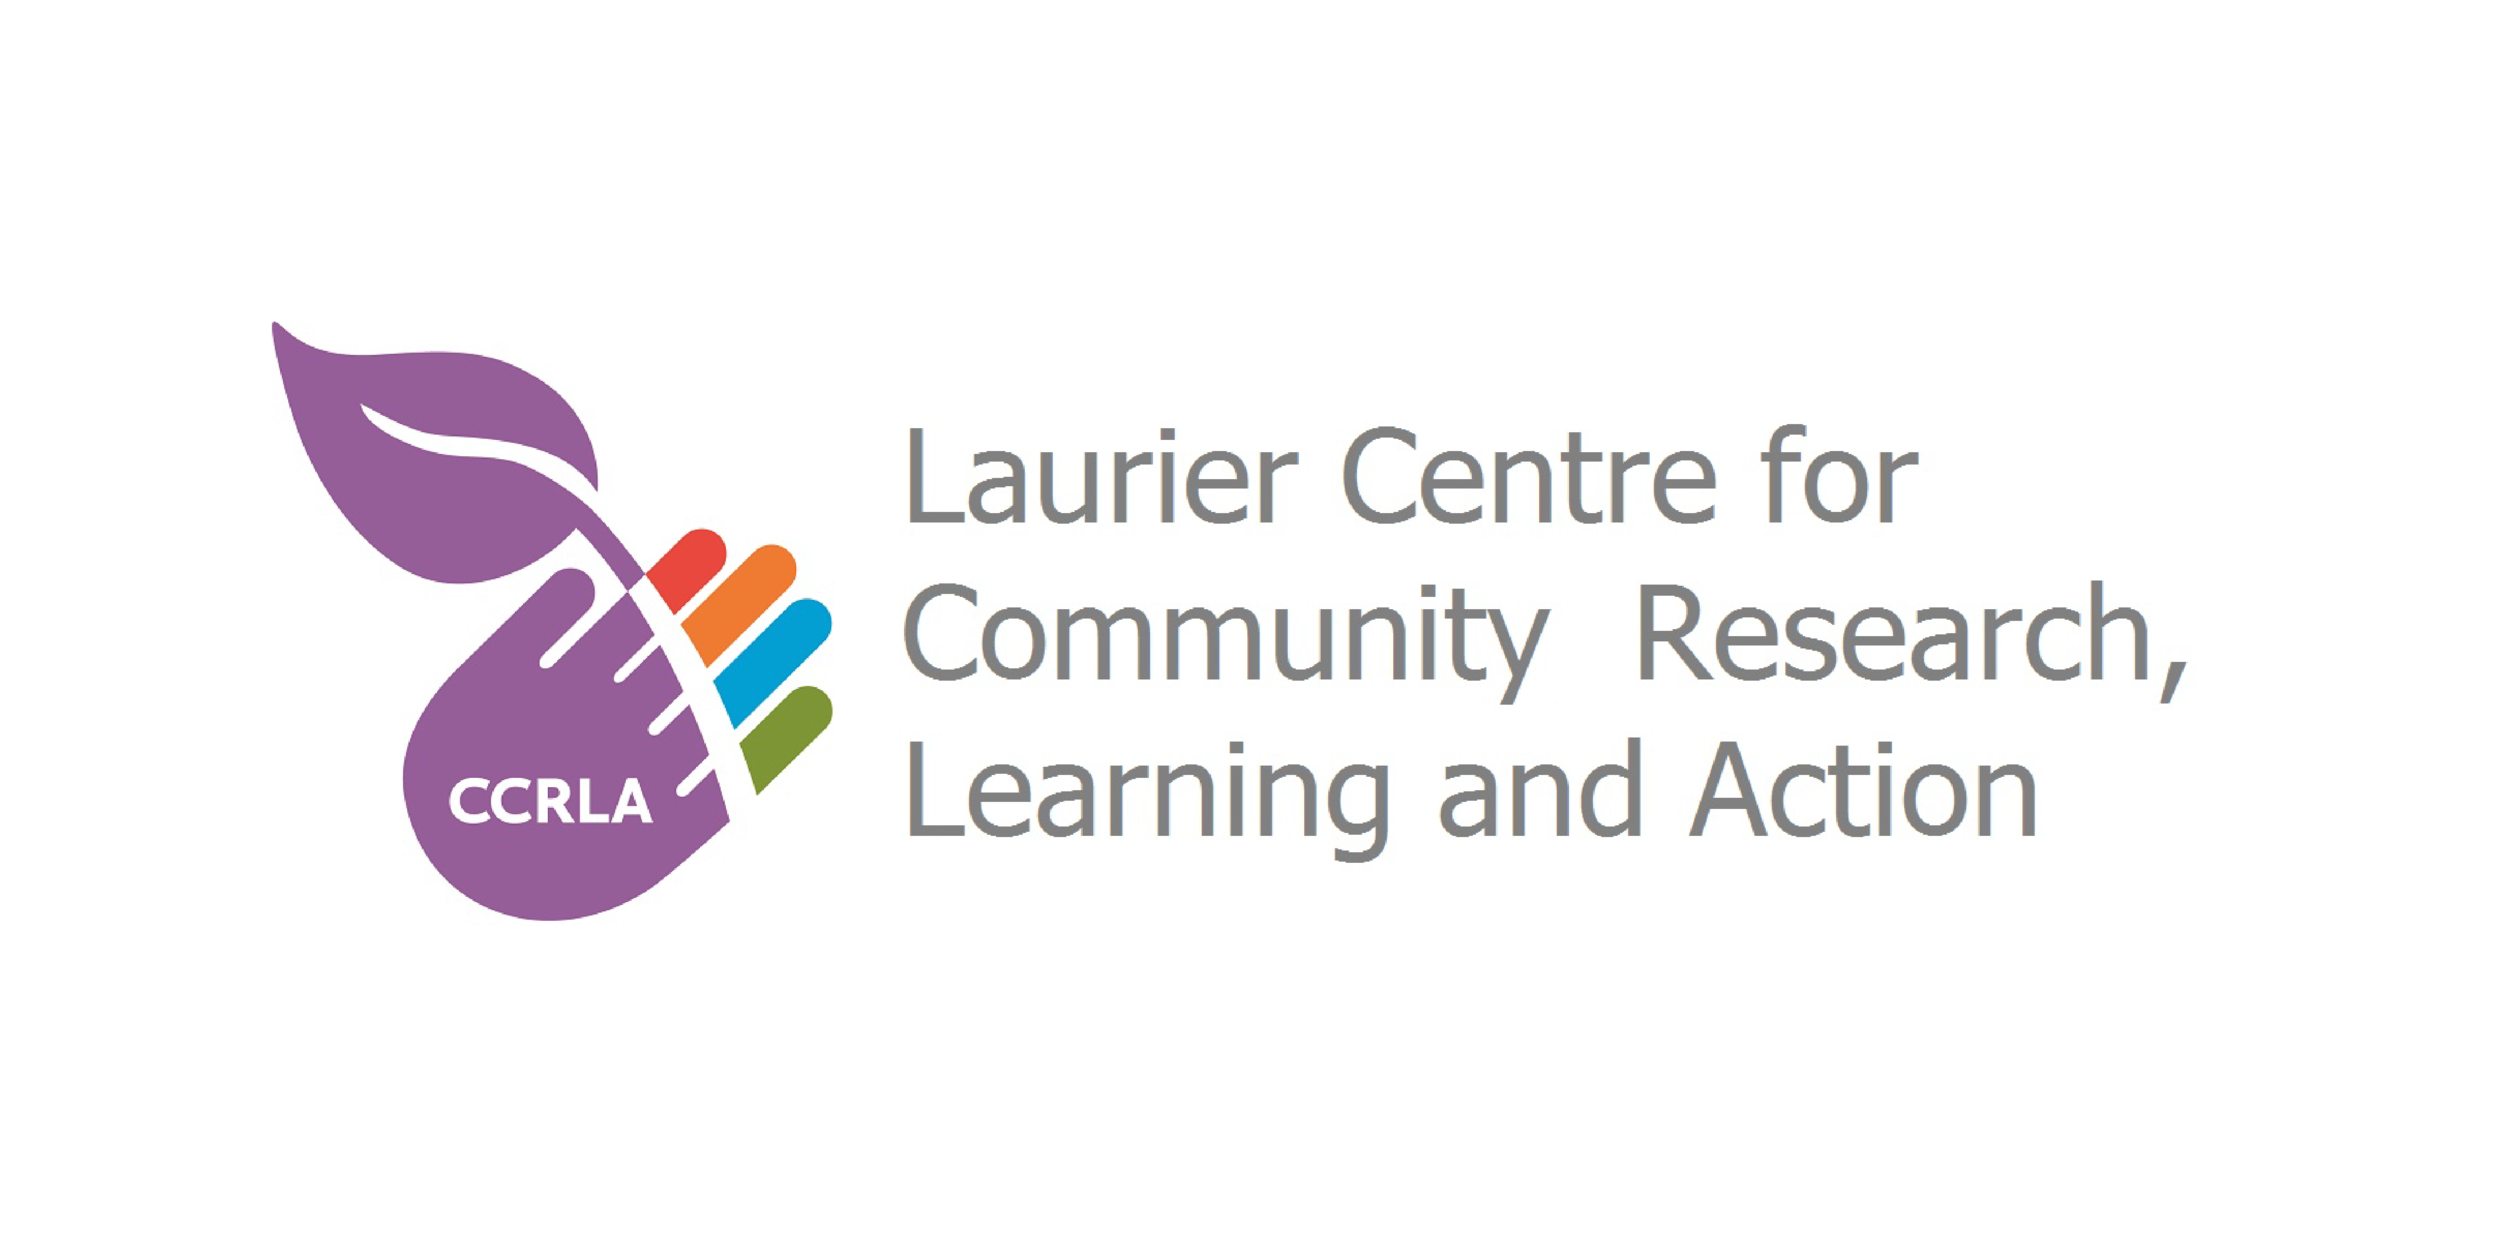 Laurier Centre for Community Research, Learning and Action- logo-01.png